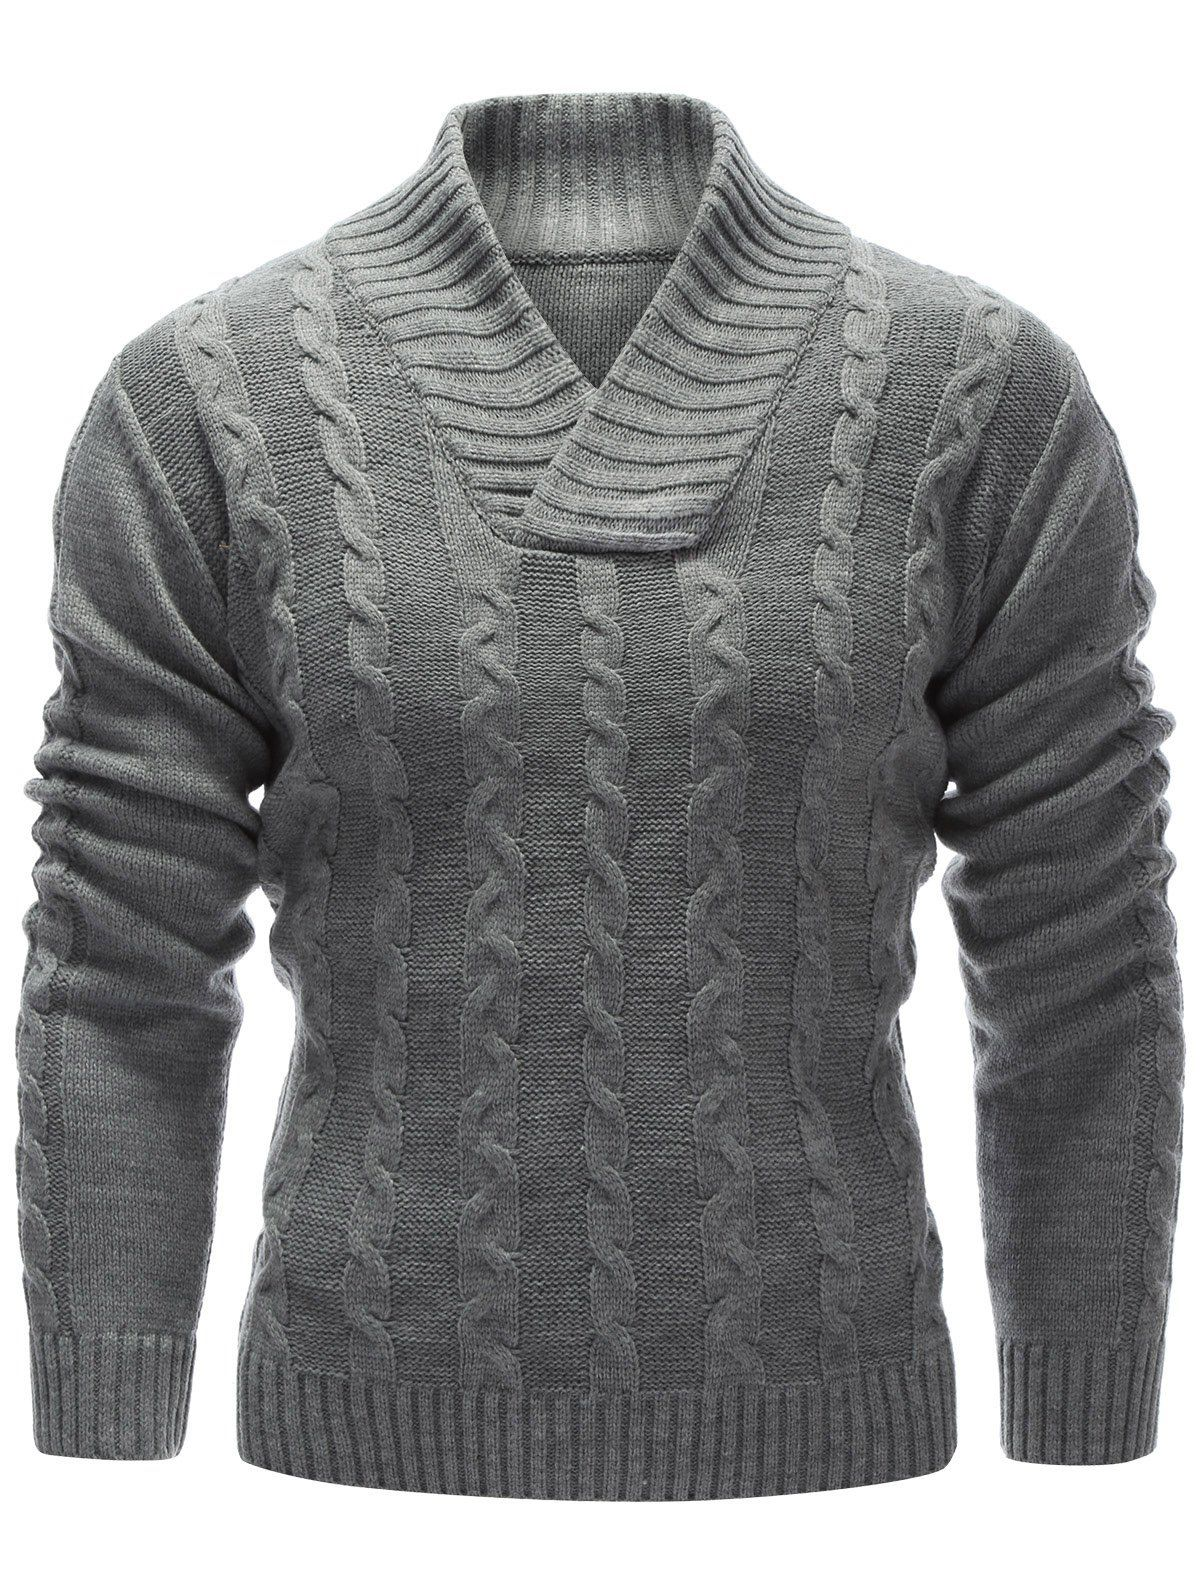 Cardigans & Sweaters | Gray Rib Hem Cable Knit Pullover Sweater ...